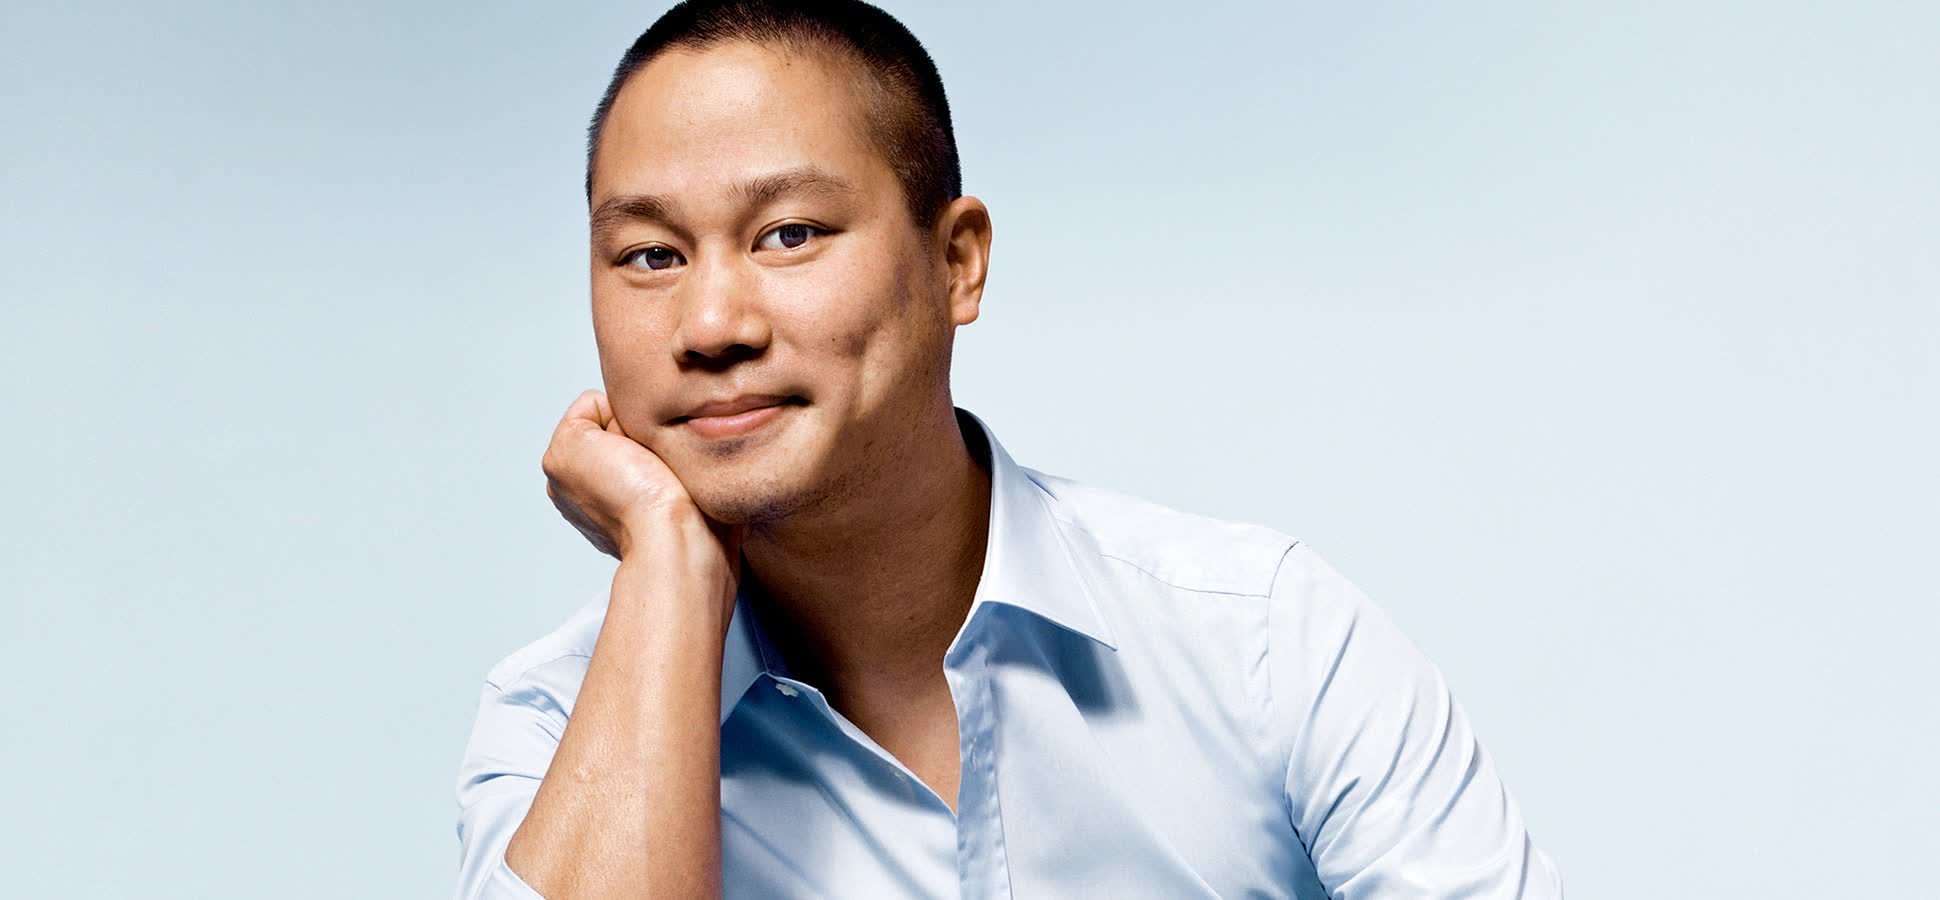 Tony Hsieh, former Zappos CEO and beloved tech pioneer, has passed away